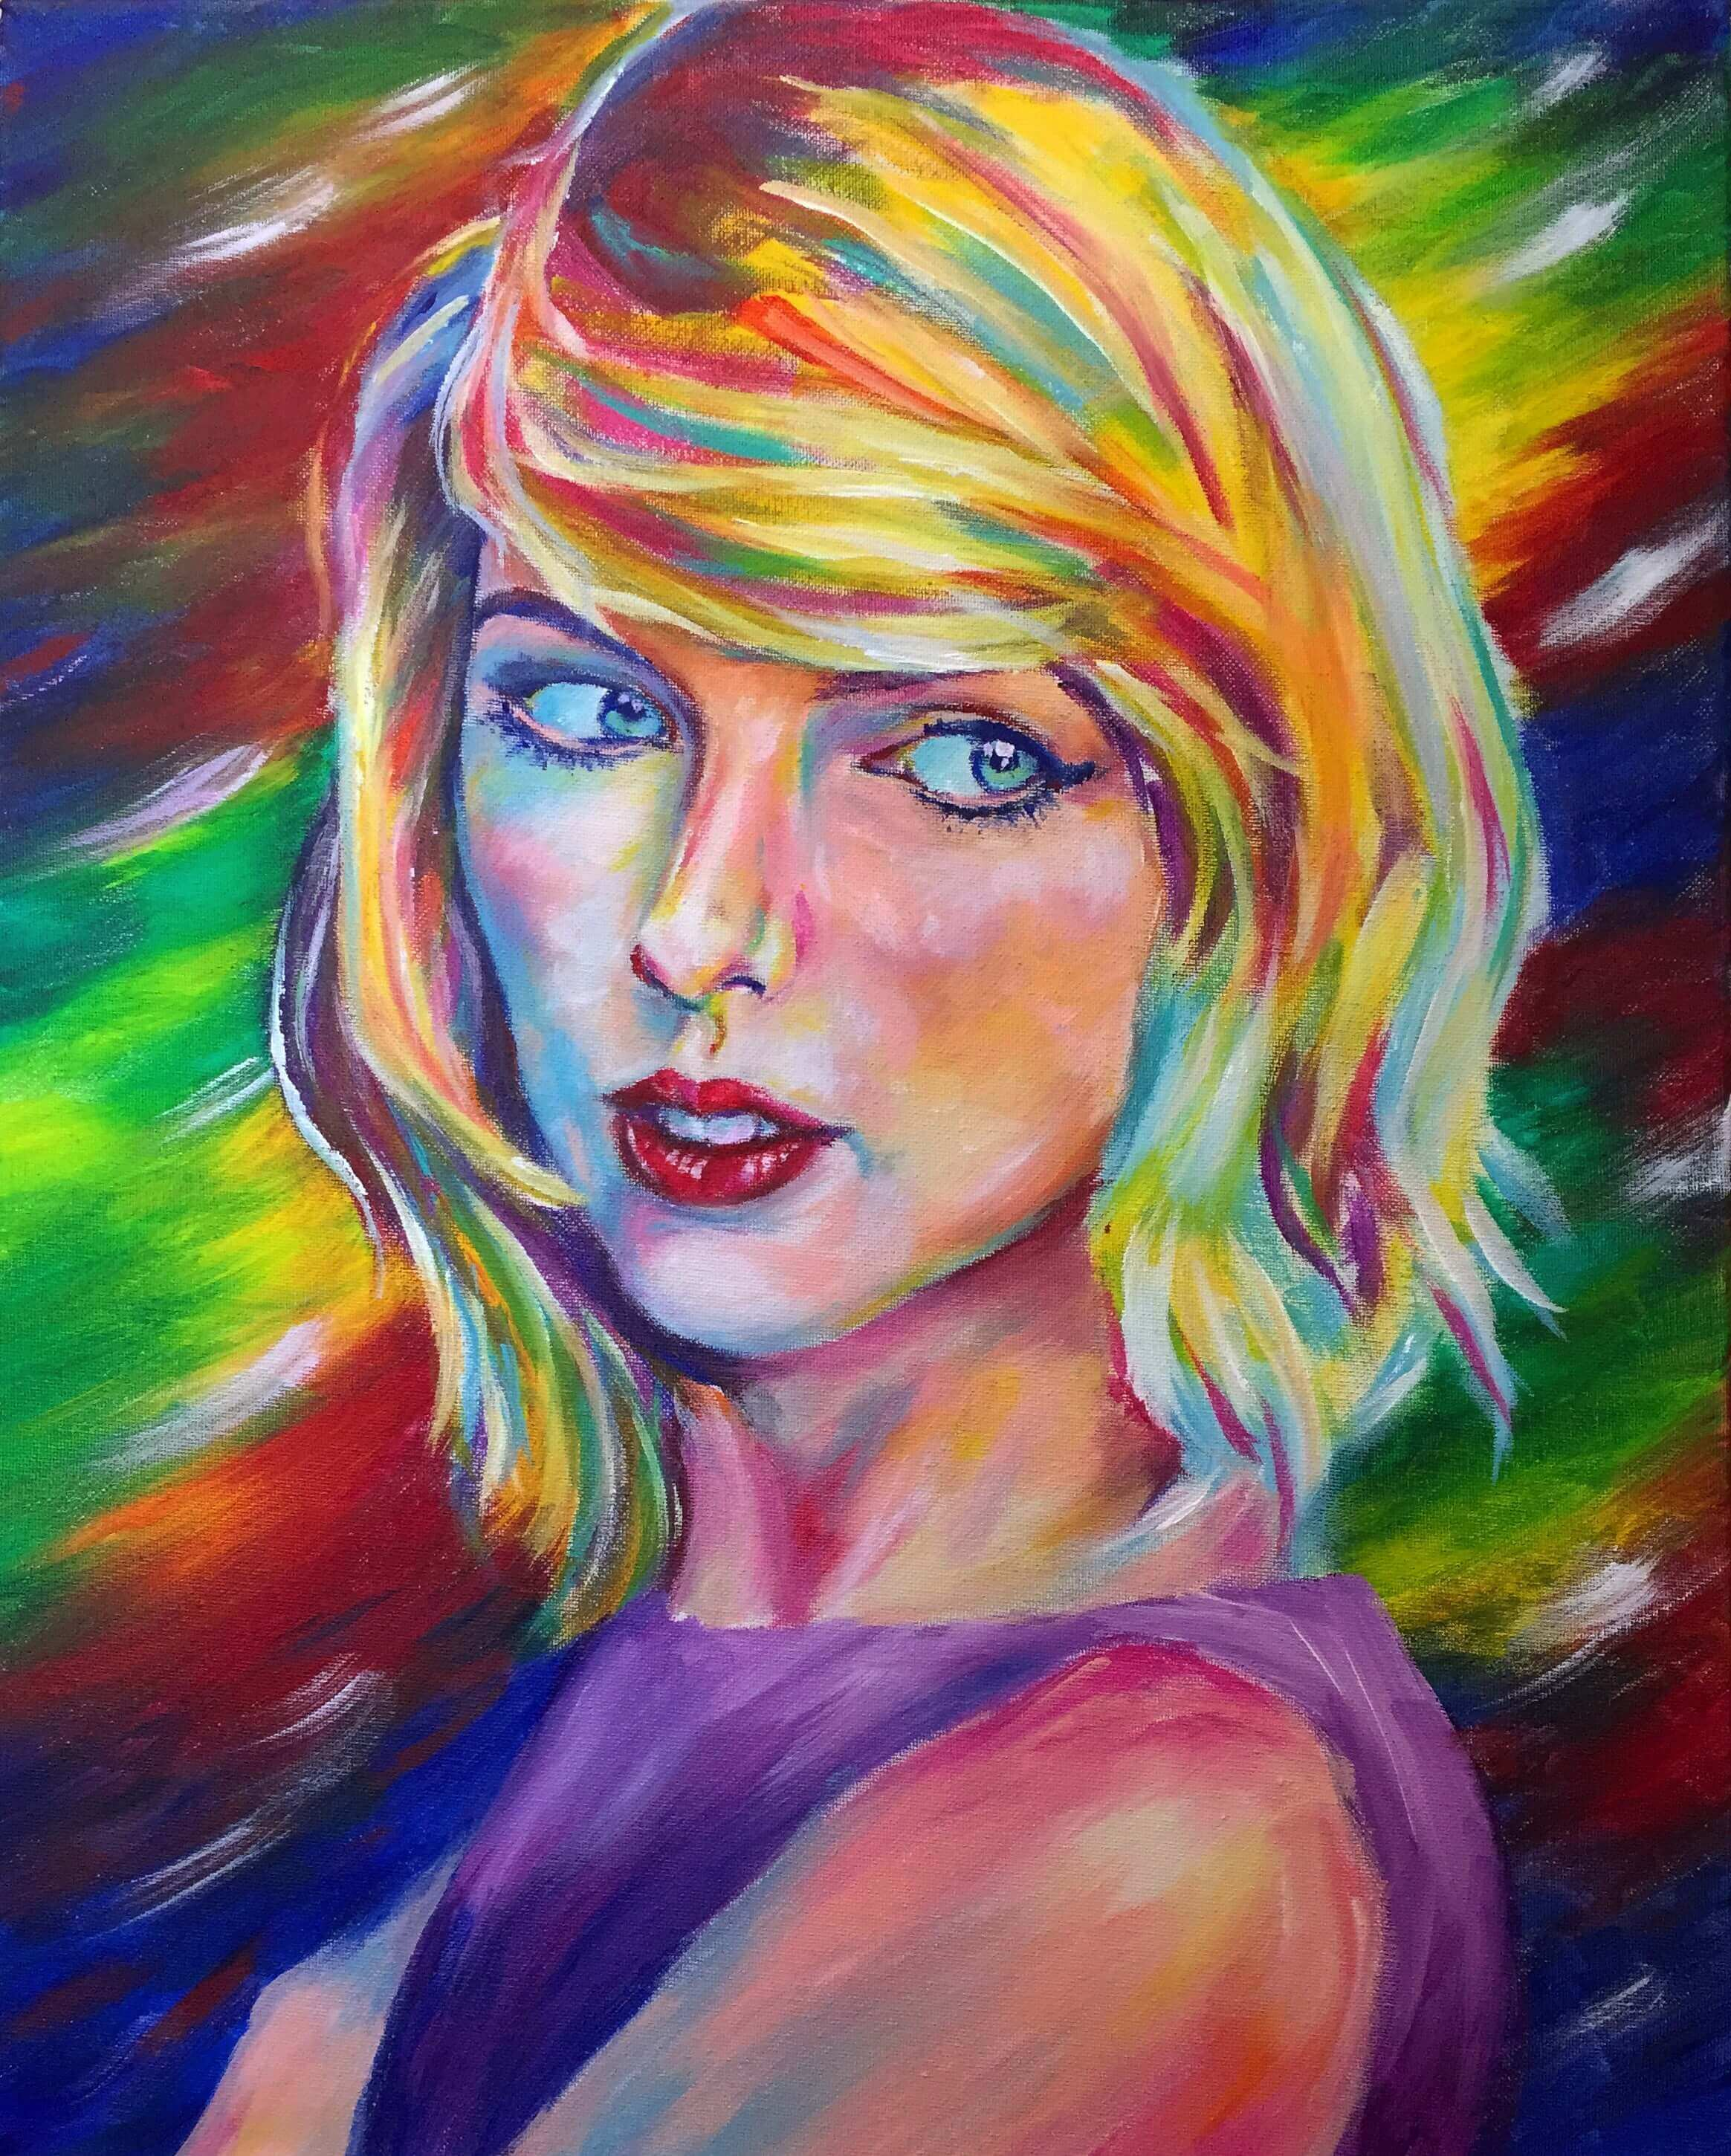 Taylor Swift 16x20 Acrylic on Canvas by Taylor Wise